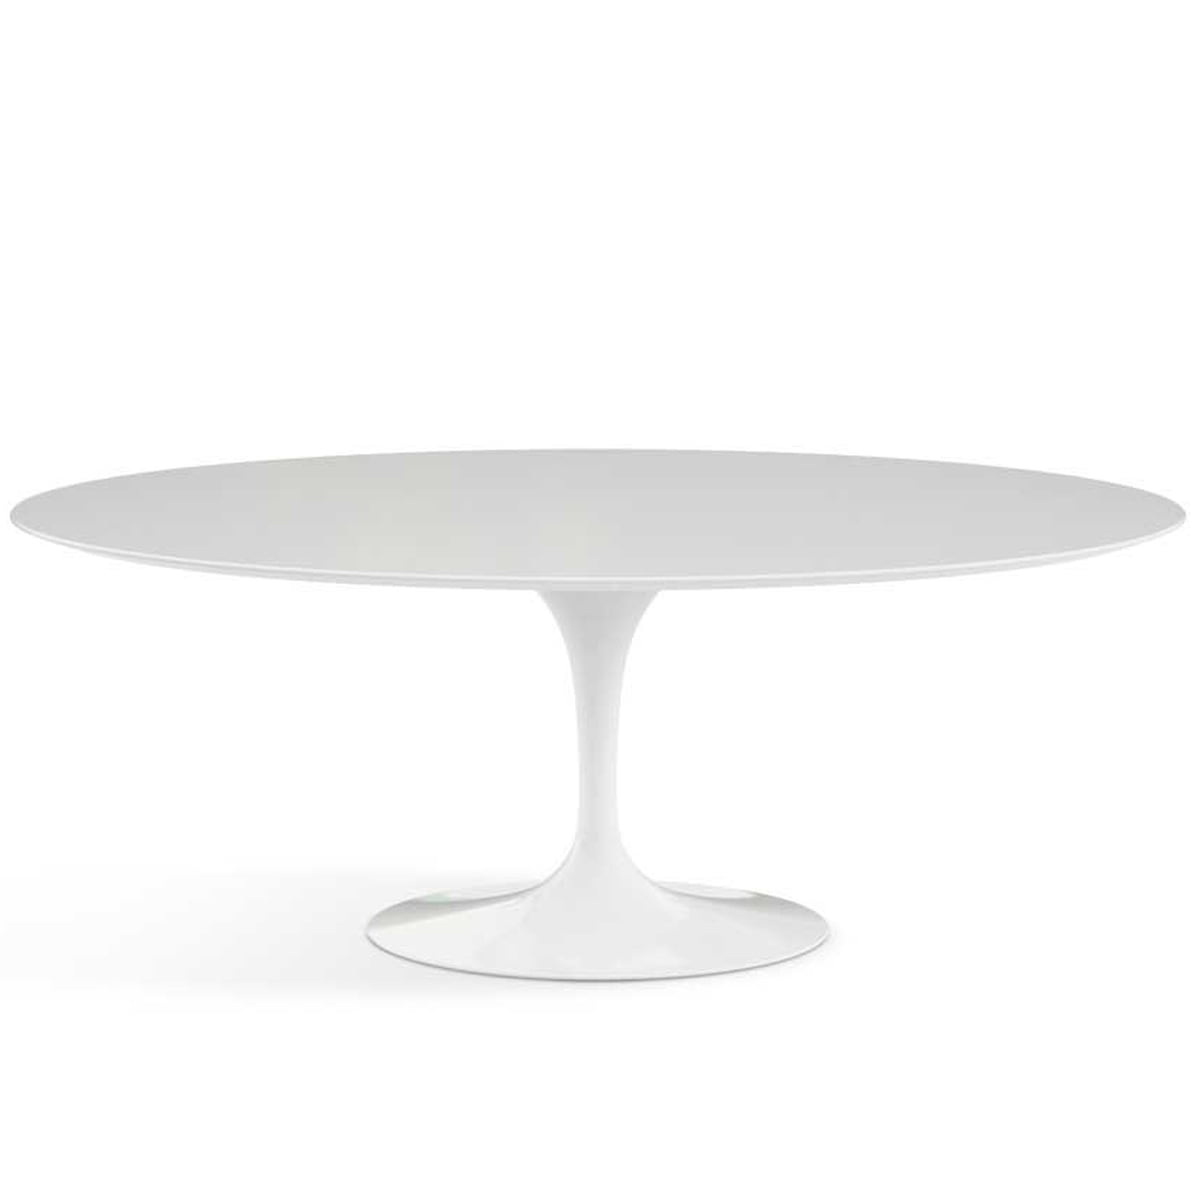 Oval tulip table and chairs saarinen style oval marble for Designer esstisch replica